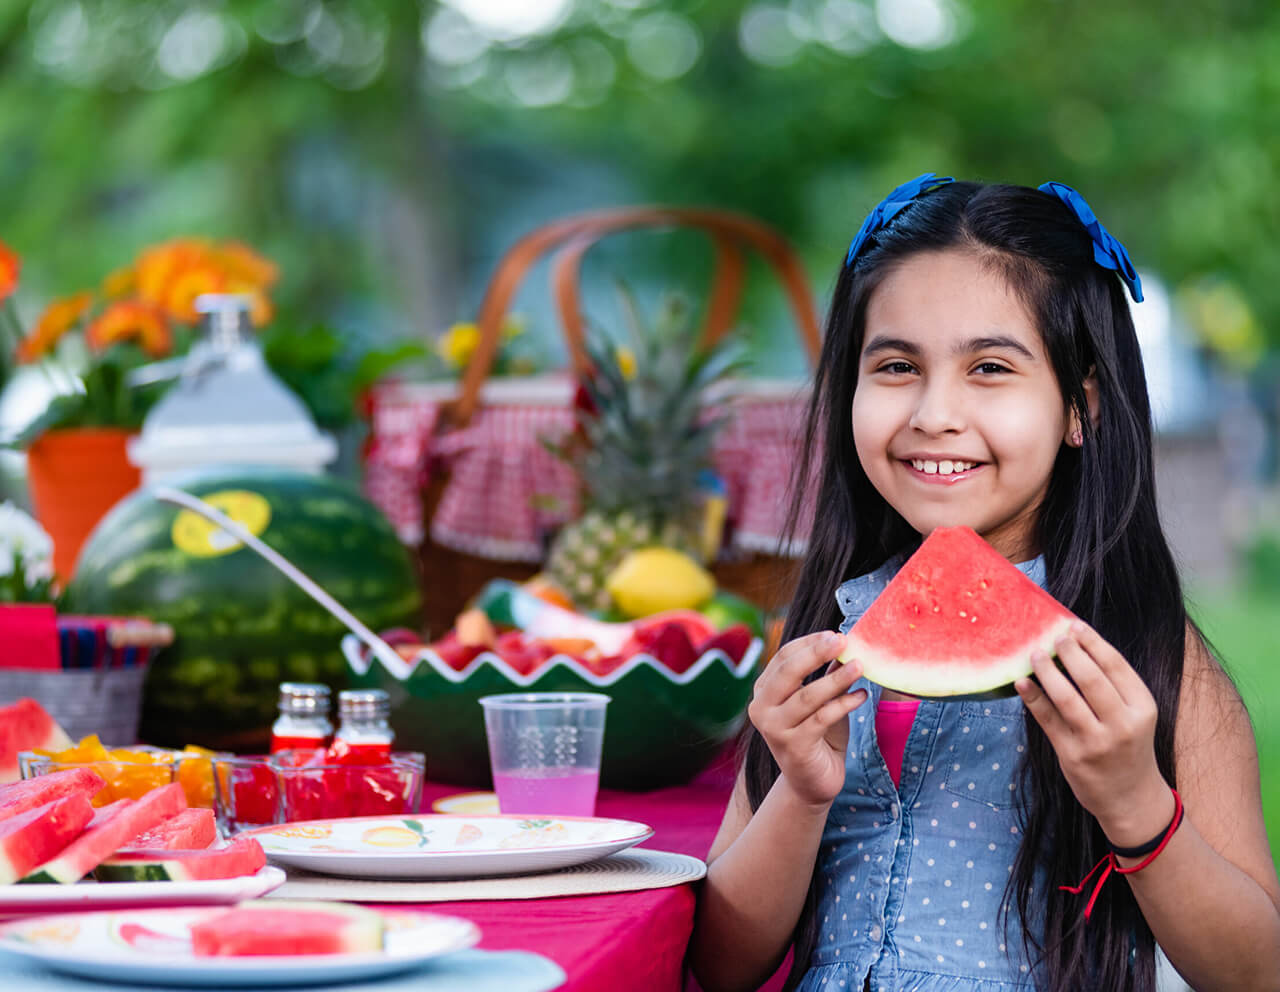 Kids Choice Watermelons Gallery girl eating watermelon